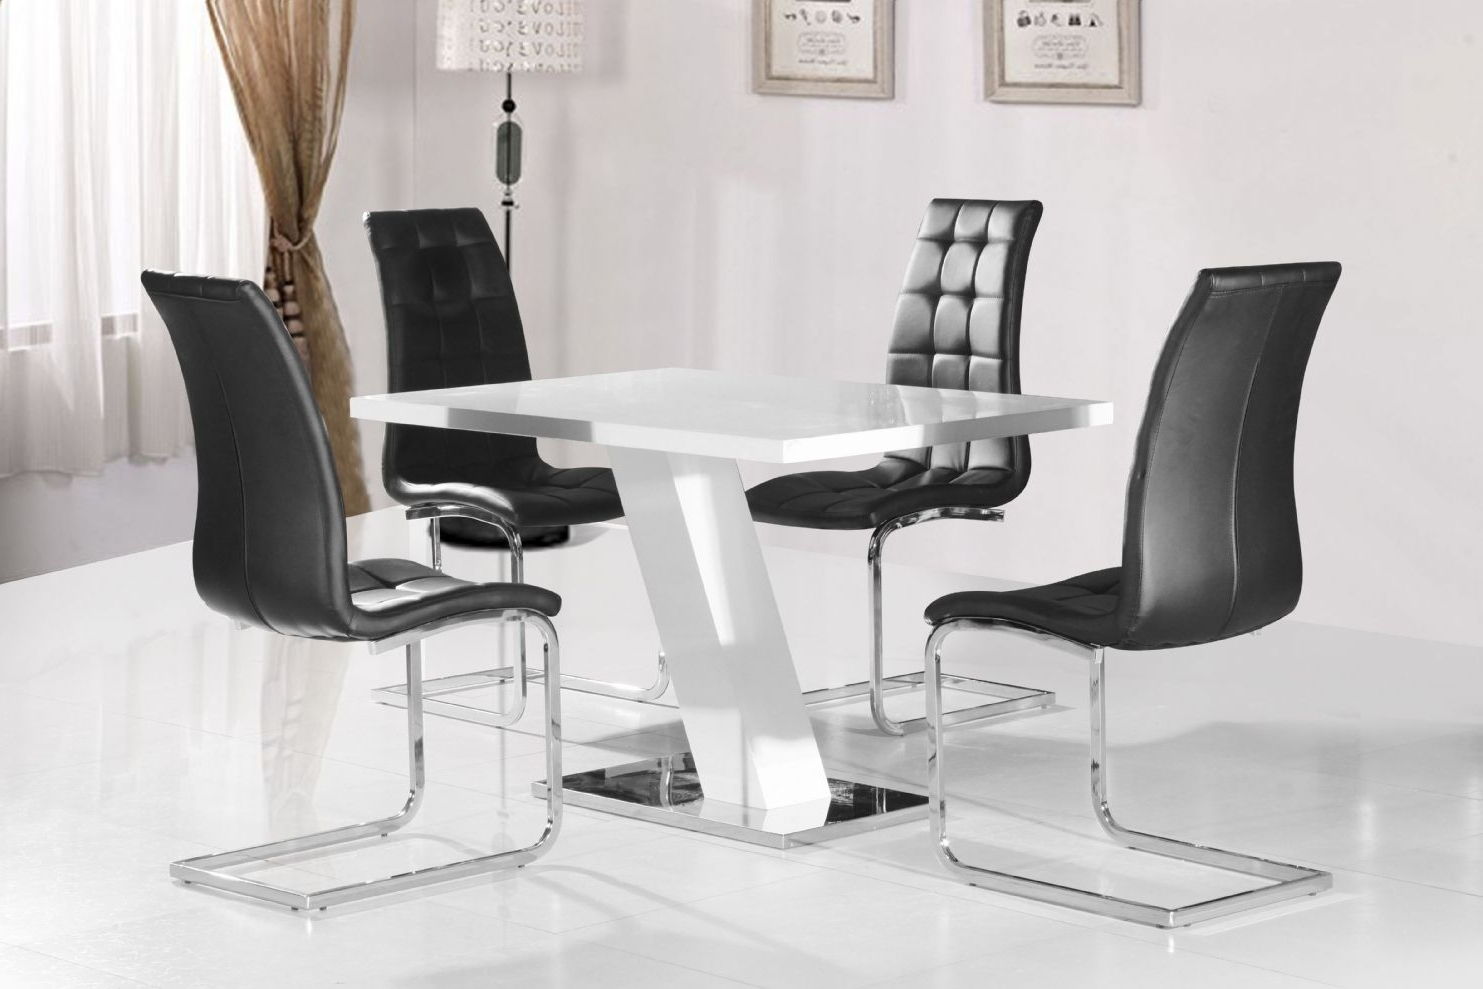 Cheap White High Gloss Dining Tables In Current Grazia White High Gloss Contemporary Designer 120 Cm Compact Dining Table  Only / 4 White / Black Chairs (View 2 of 25)